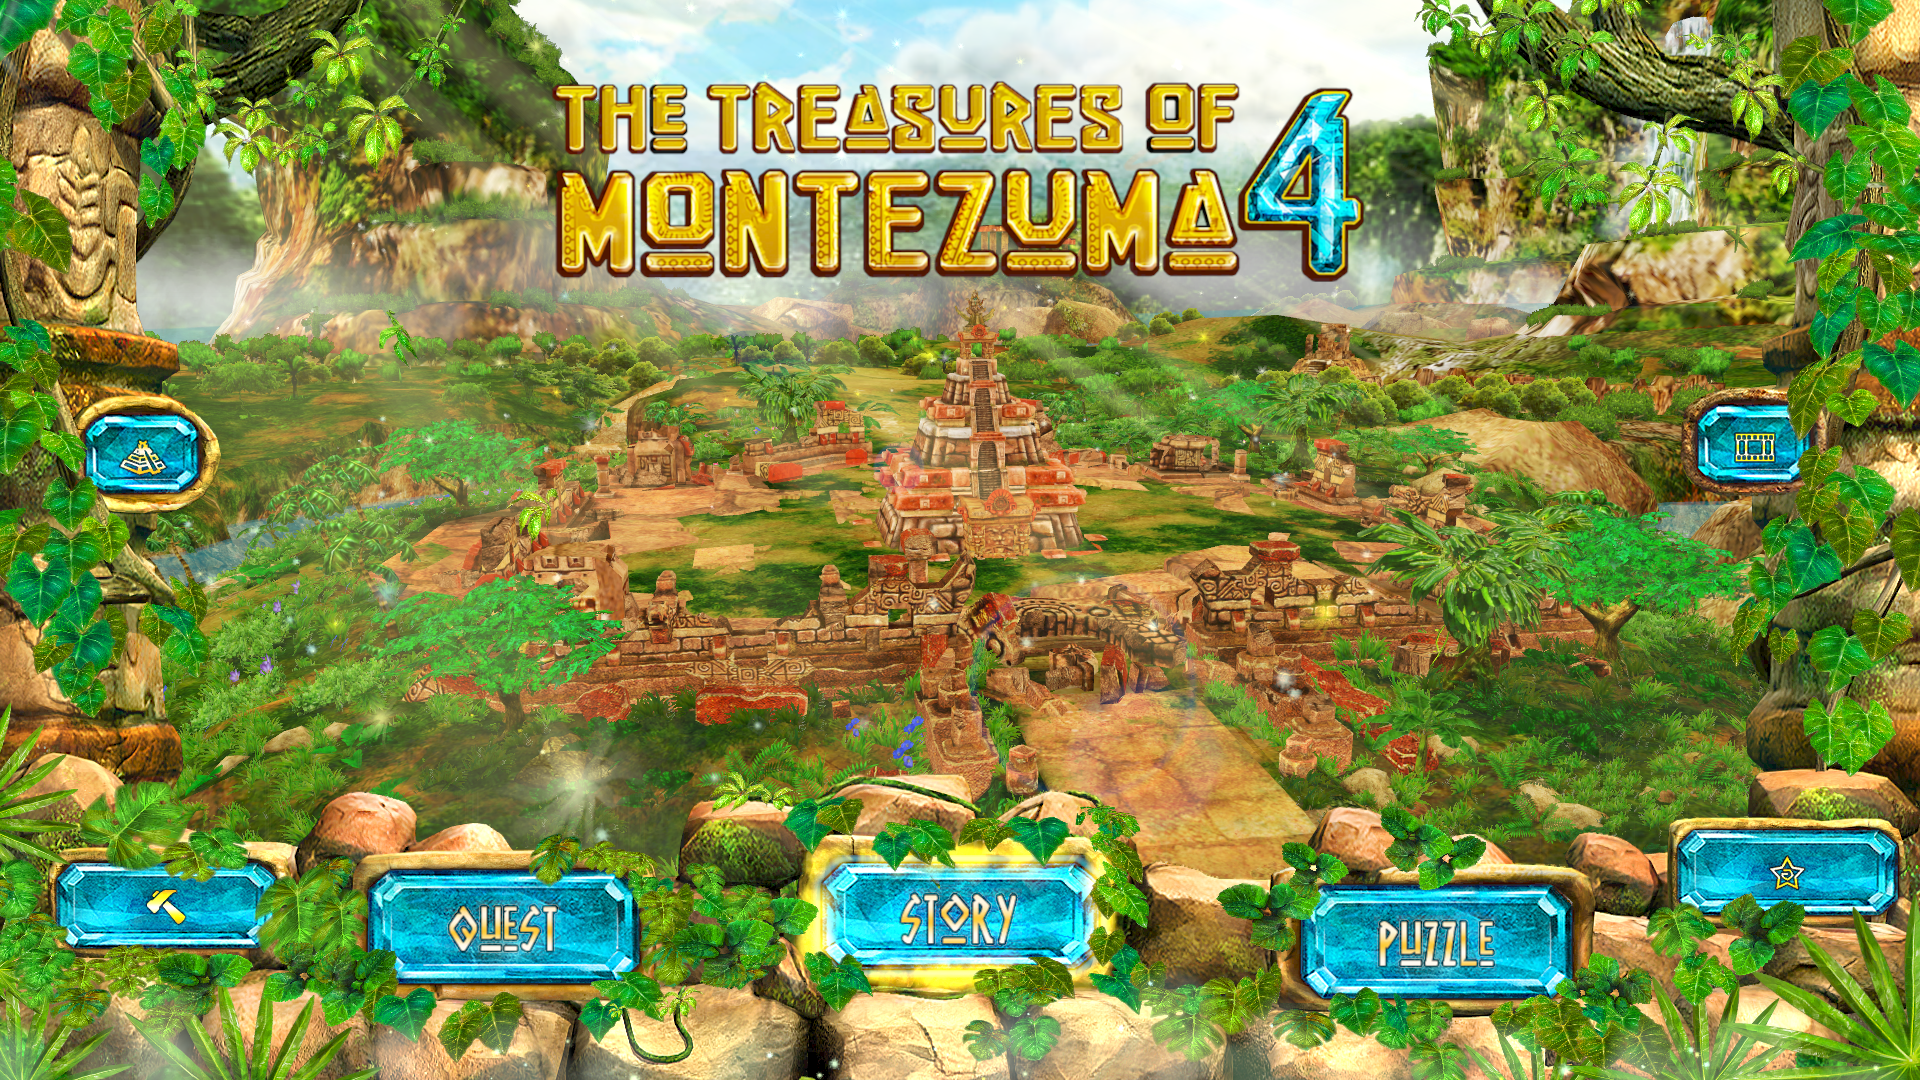 『The Treasures of Montezuma 4』ゲーム画面